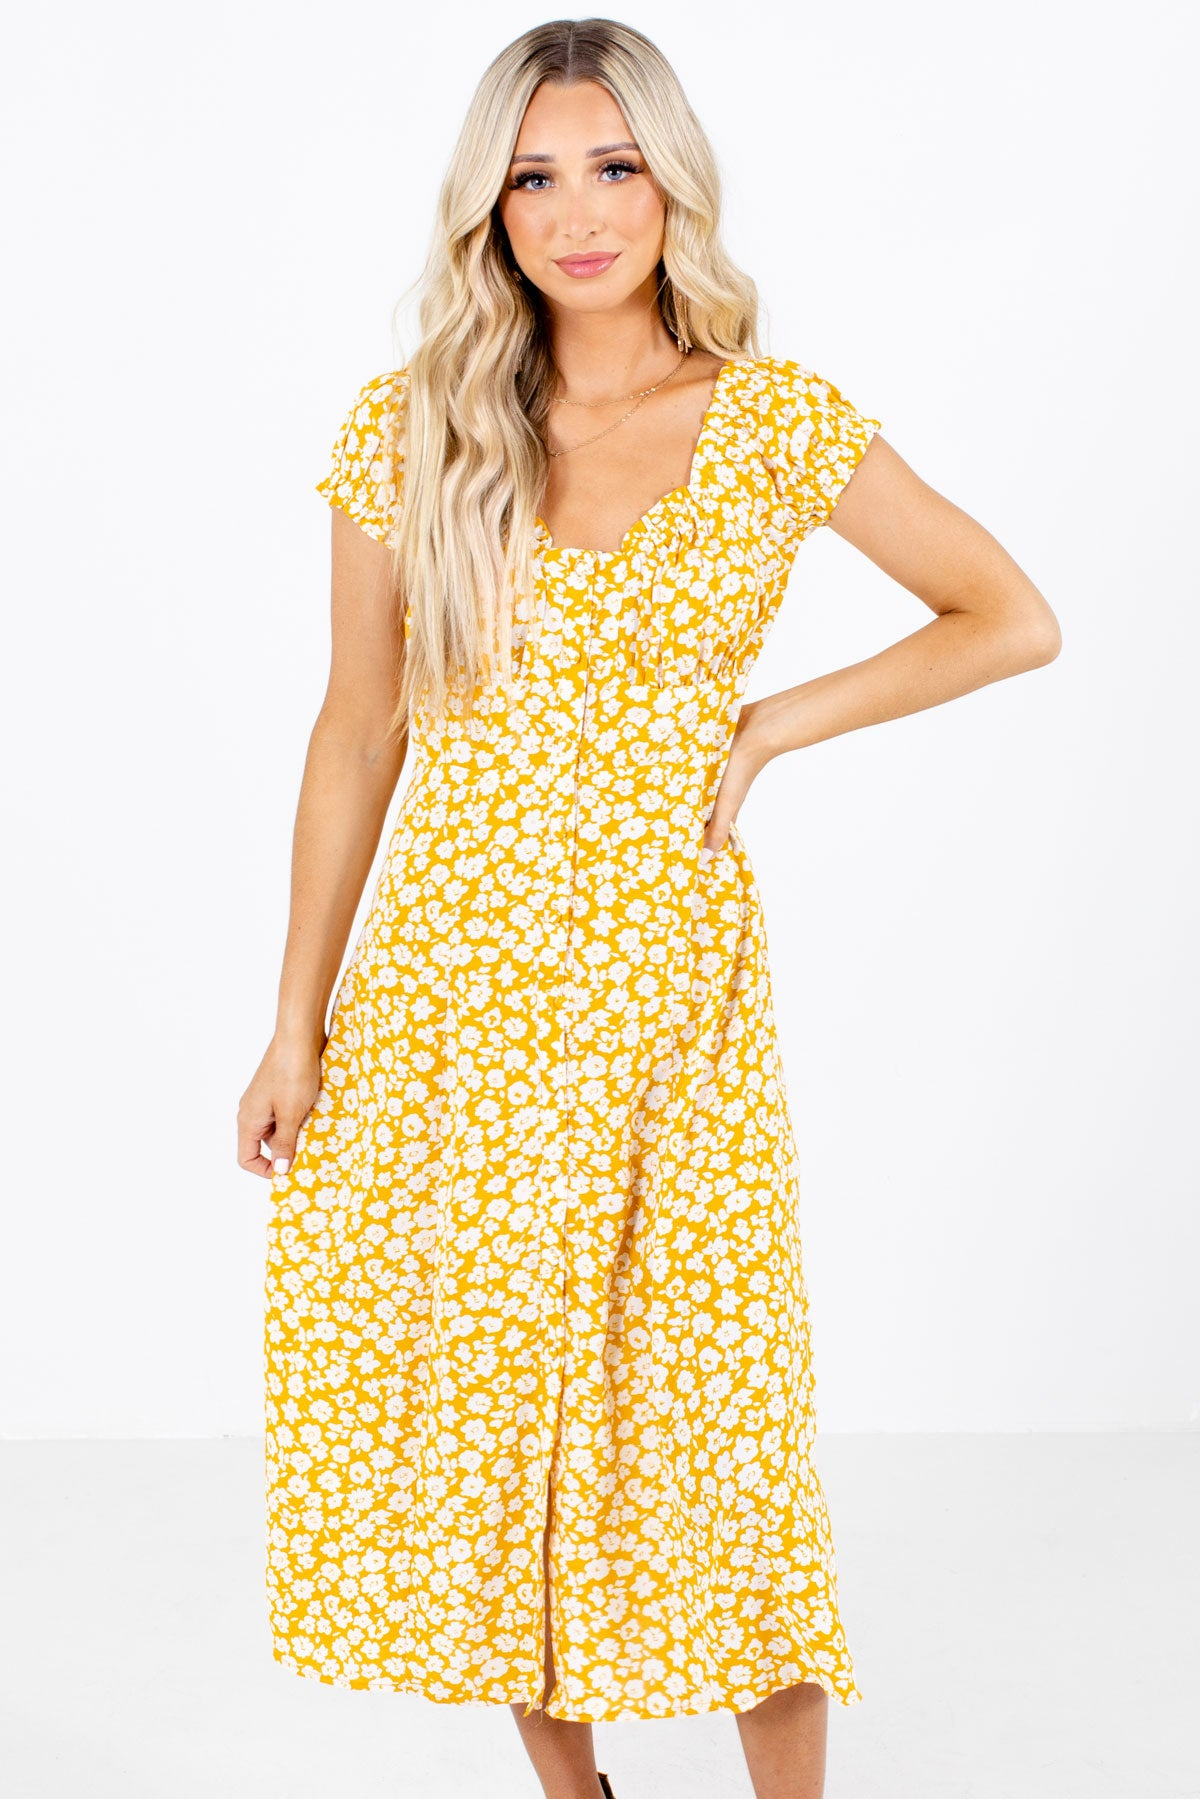 Yellow Floral Patterned Boutique Midi Dresses for Women